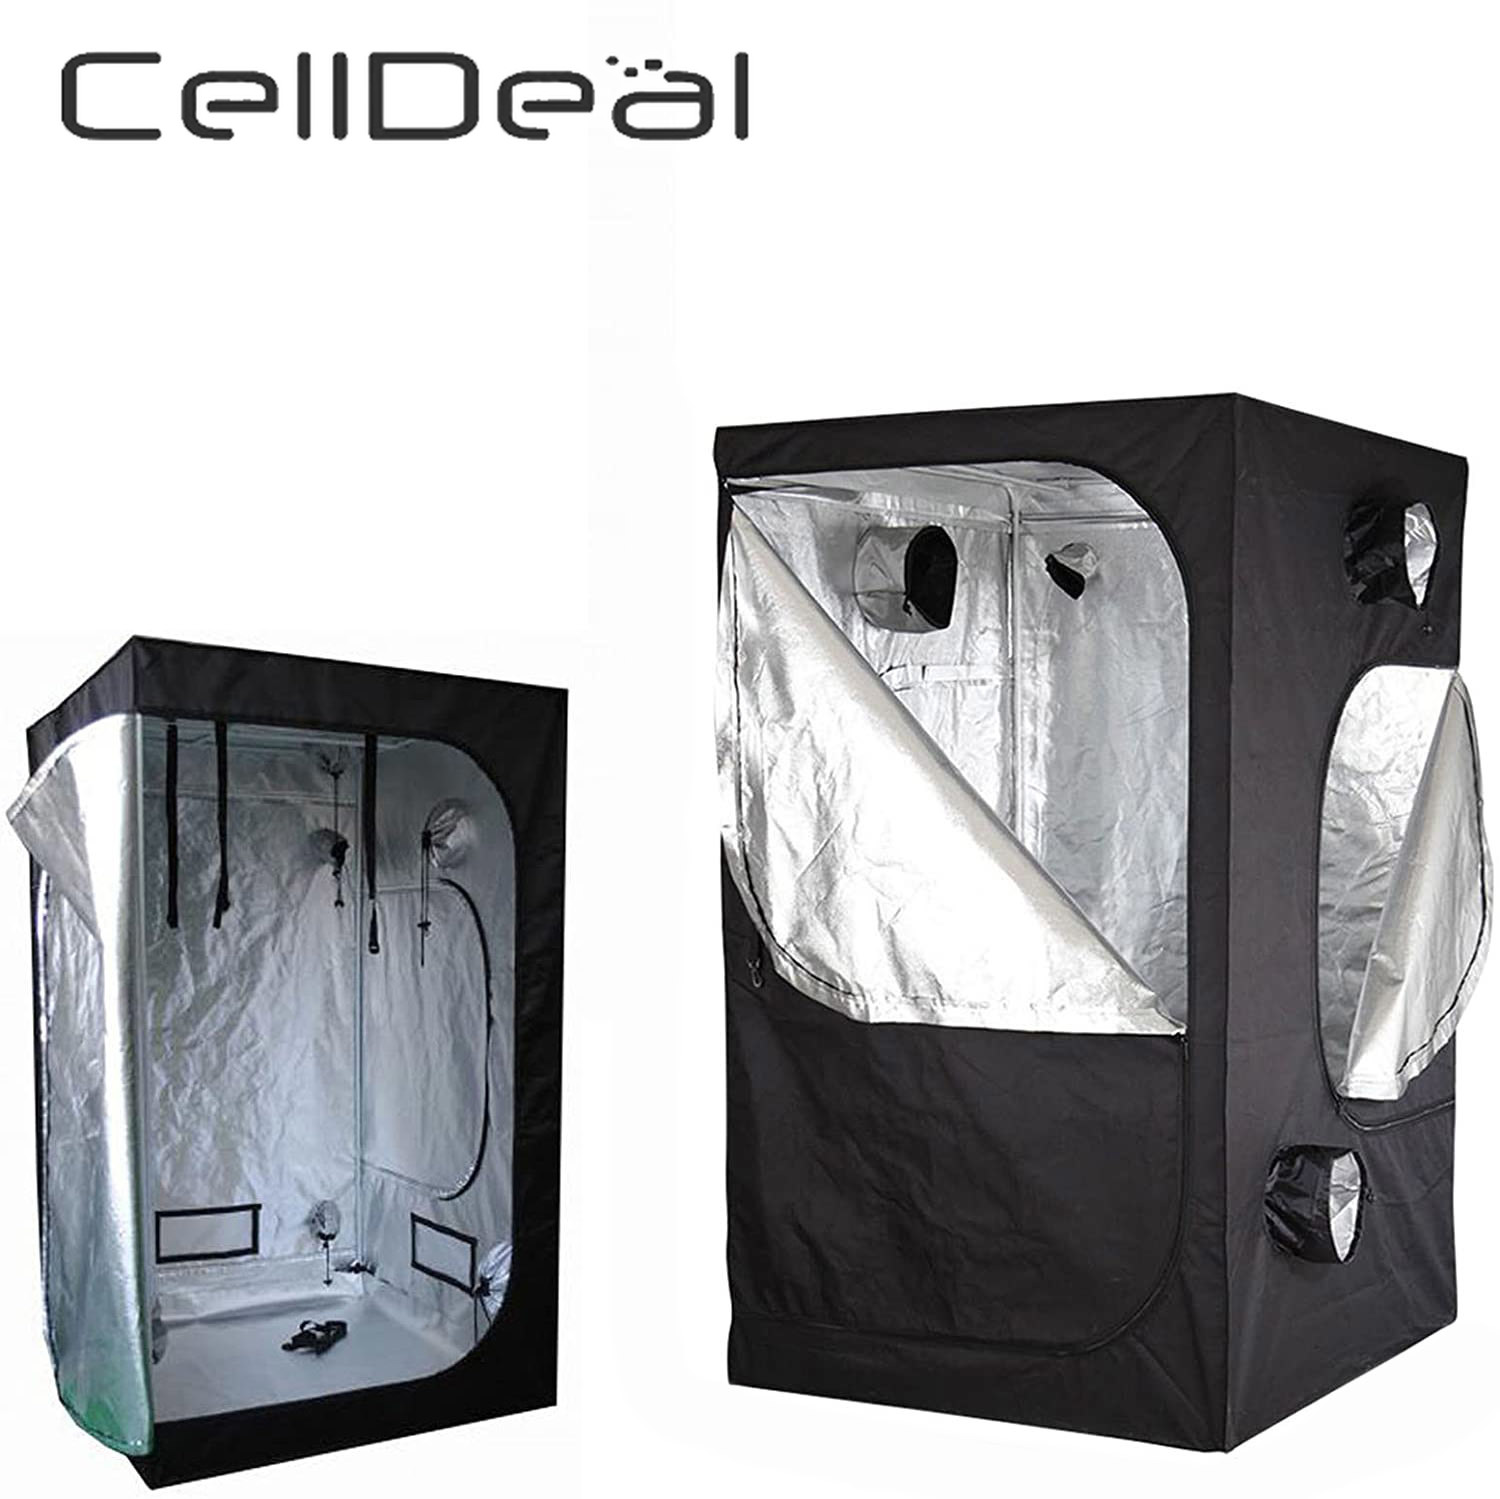 CellDeal Growbox Cabinet Growbox Culture Grow Box Greenhouse In Tent 80 X 80 X 160 Cm Grow Tent Oxford Cloth Polyester Vegetable